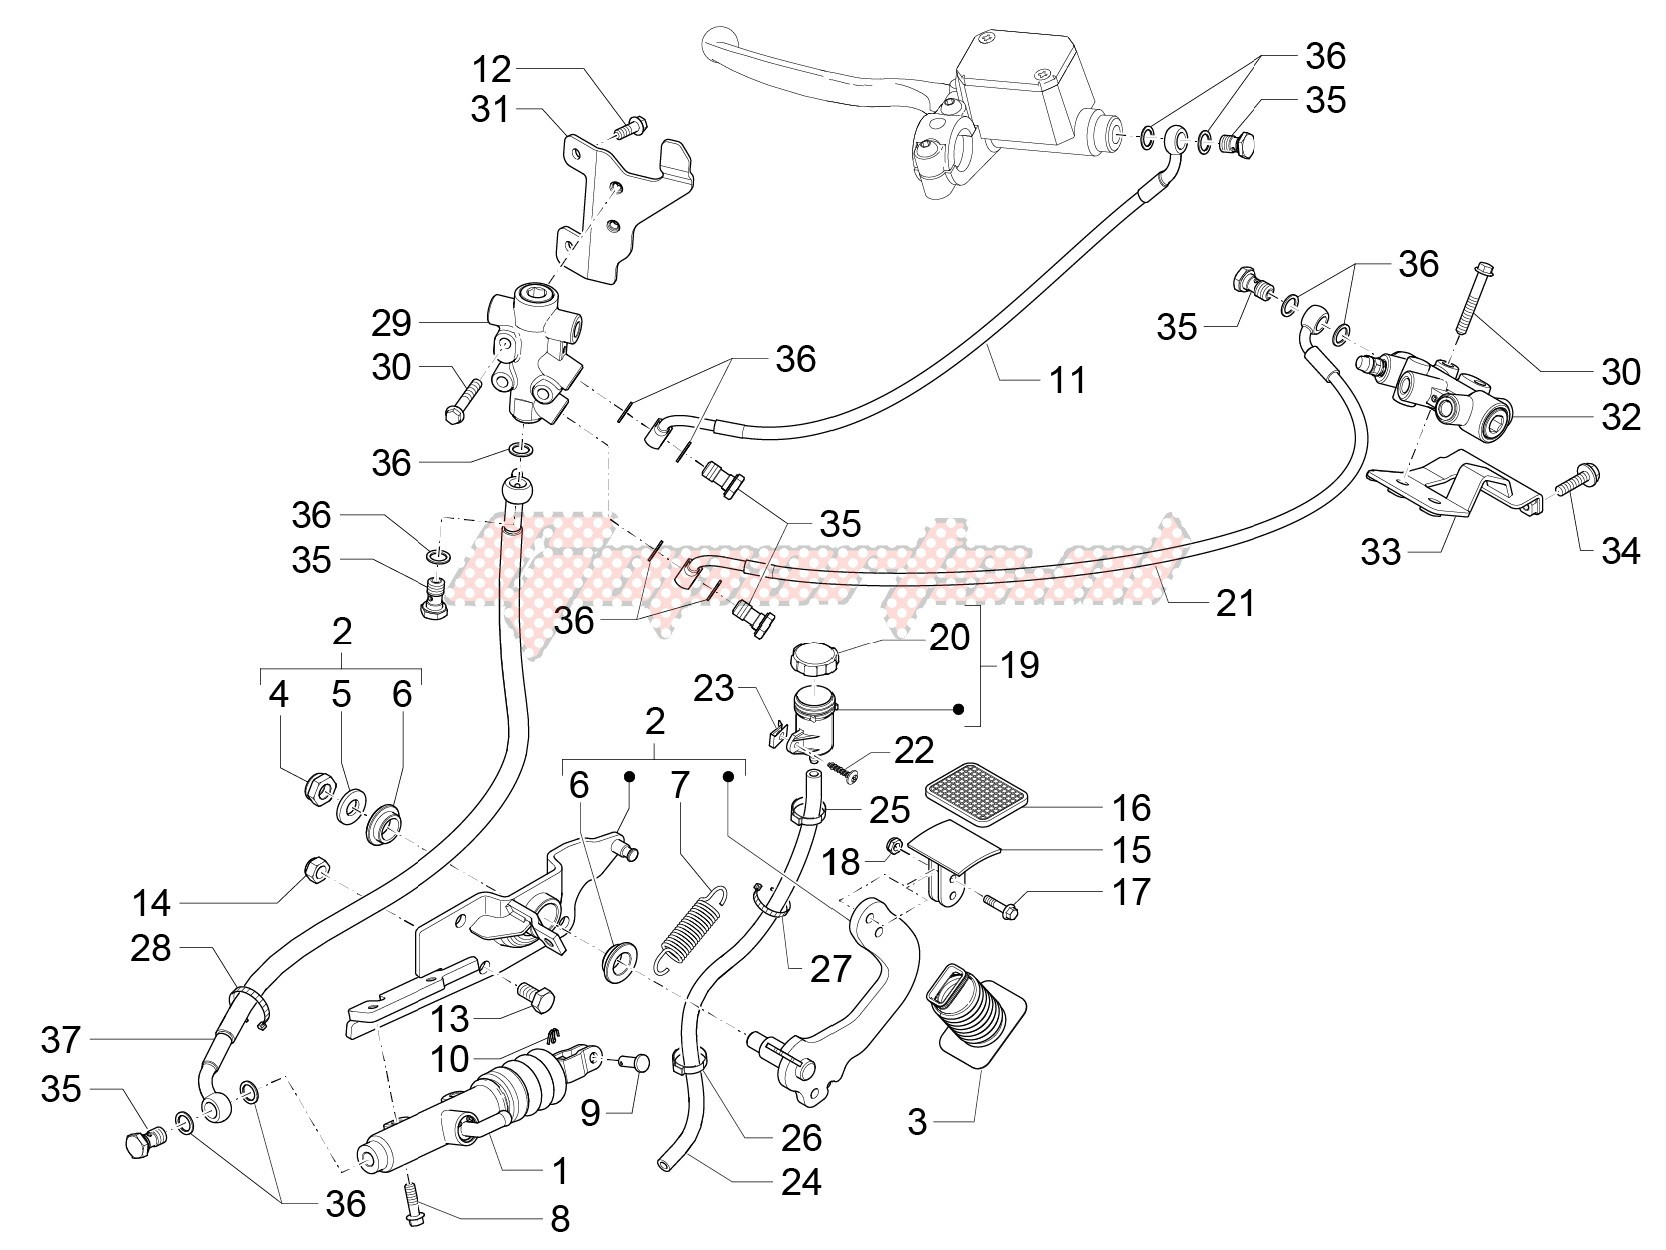 Abs System Diagrm Oem Control Pedals Levers Piaggio [scooter] Mp3 300 Lt Of Abs System Diagrm